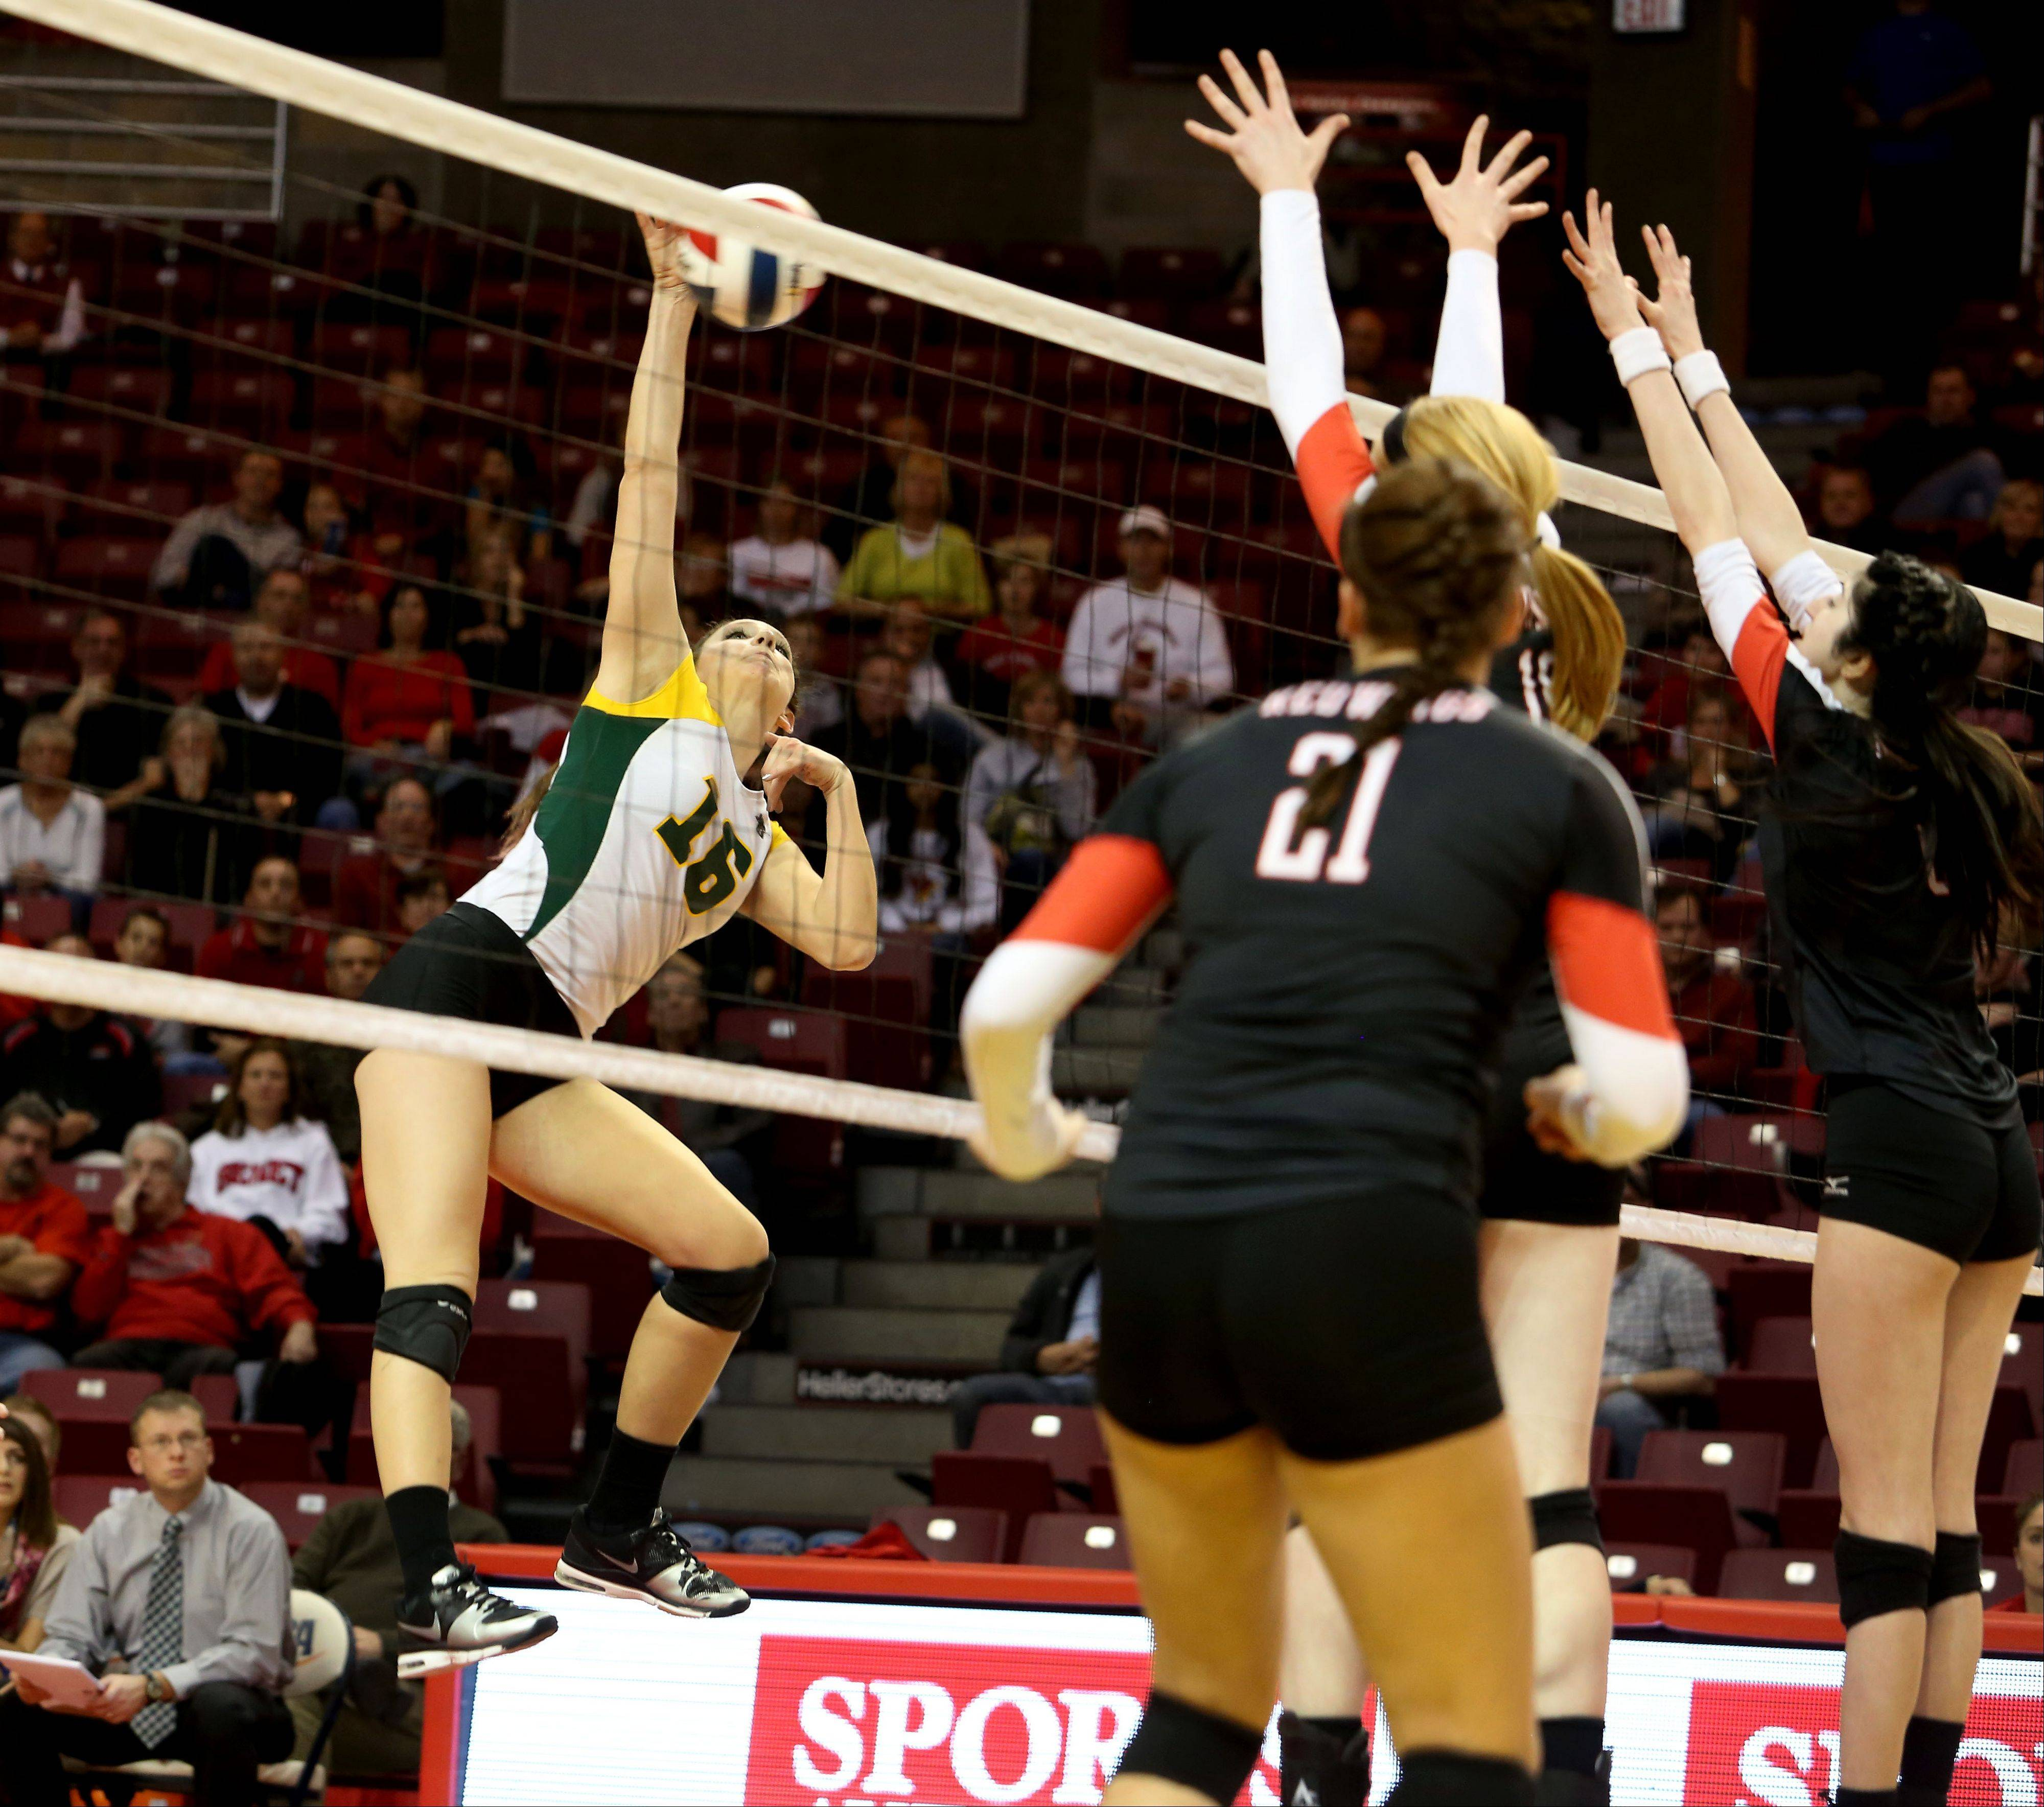 Carly Nolan of Crystal Lake South goes up to spike the ball against Benet in Class 4A state girls volleyball action on Friday in Normal.